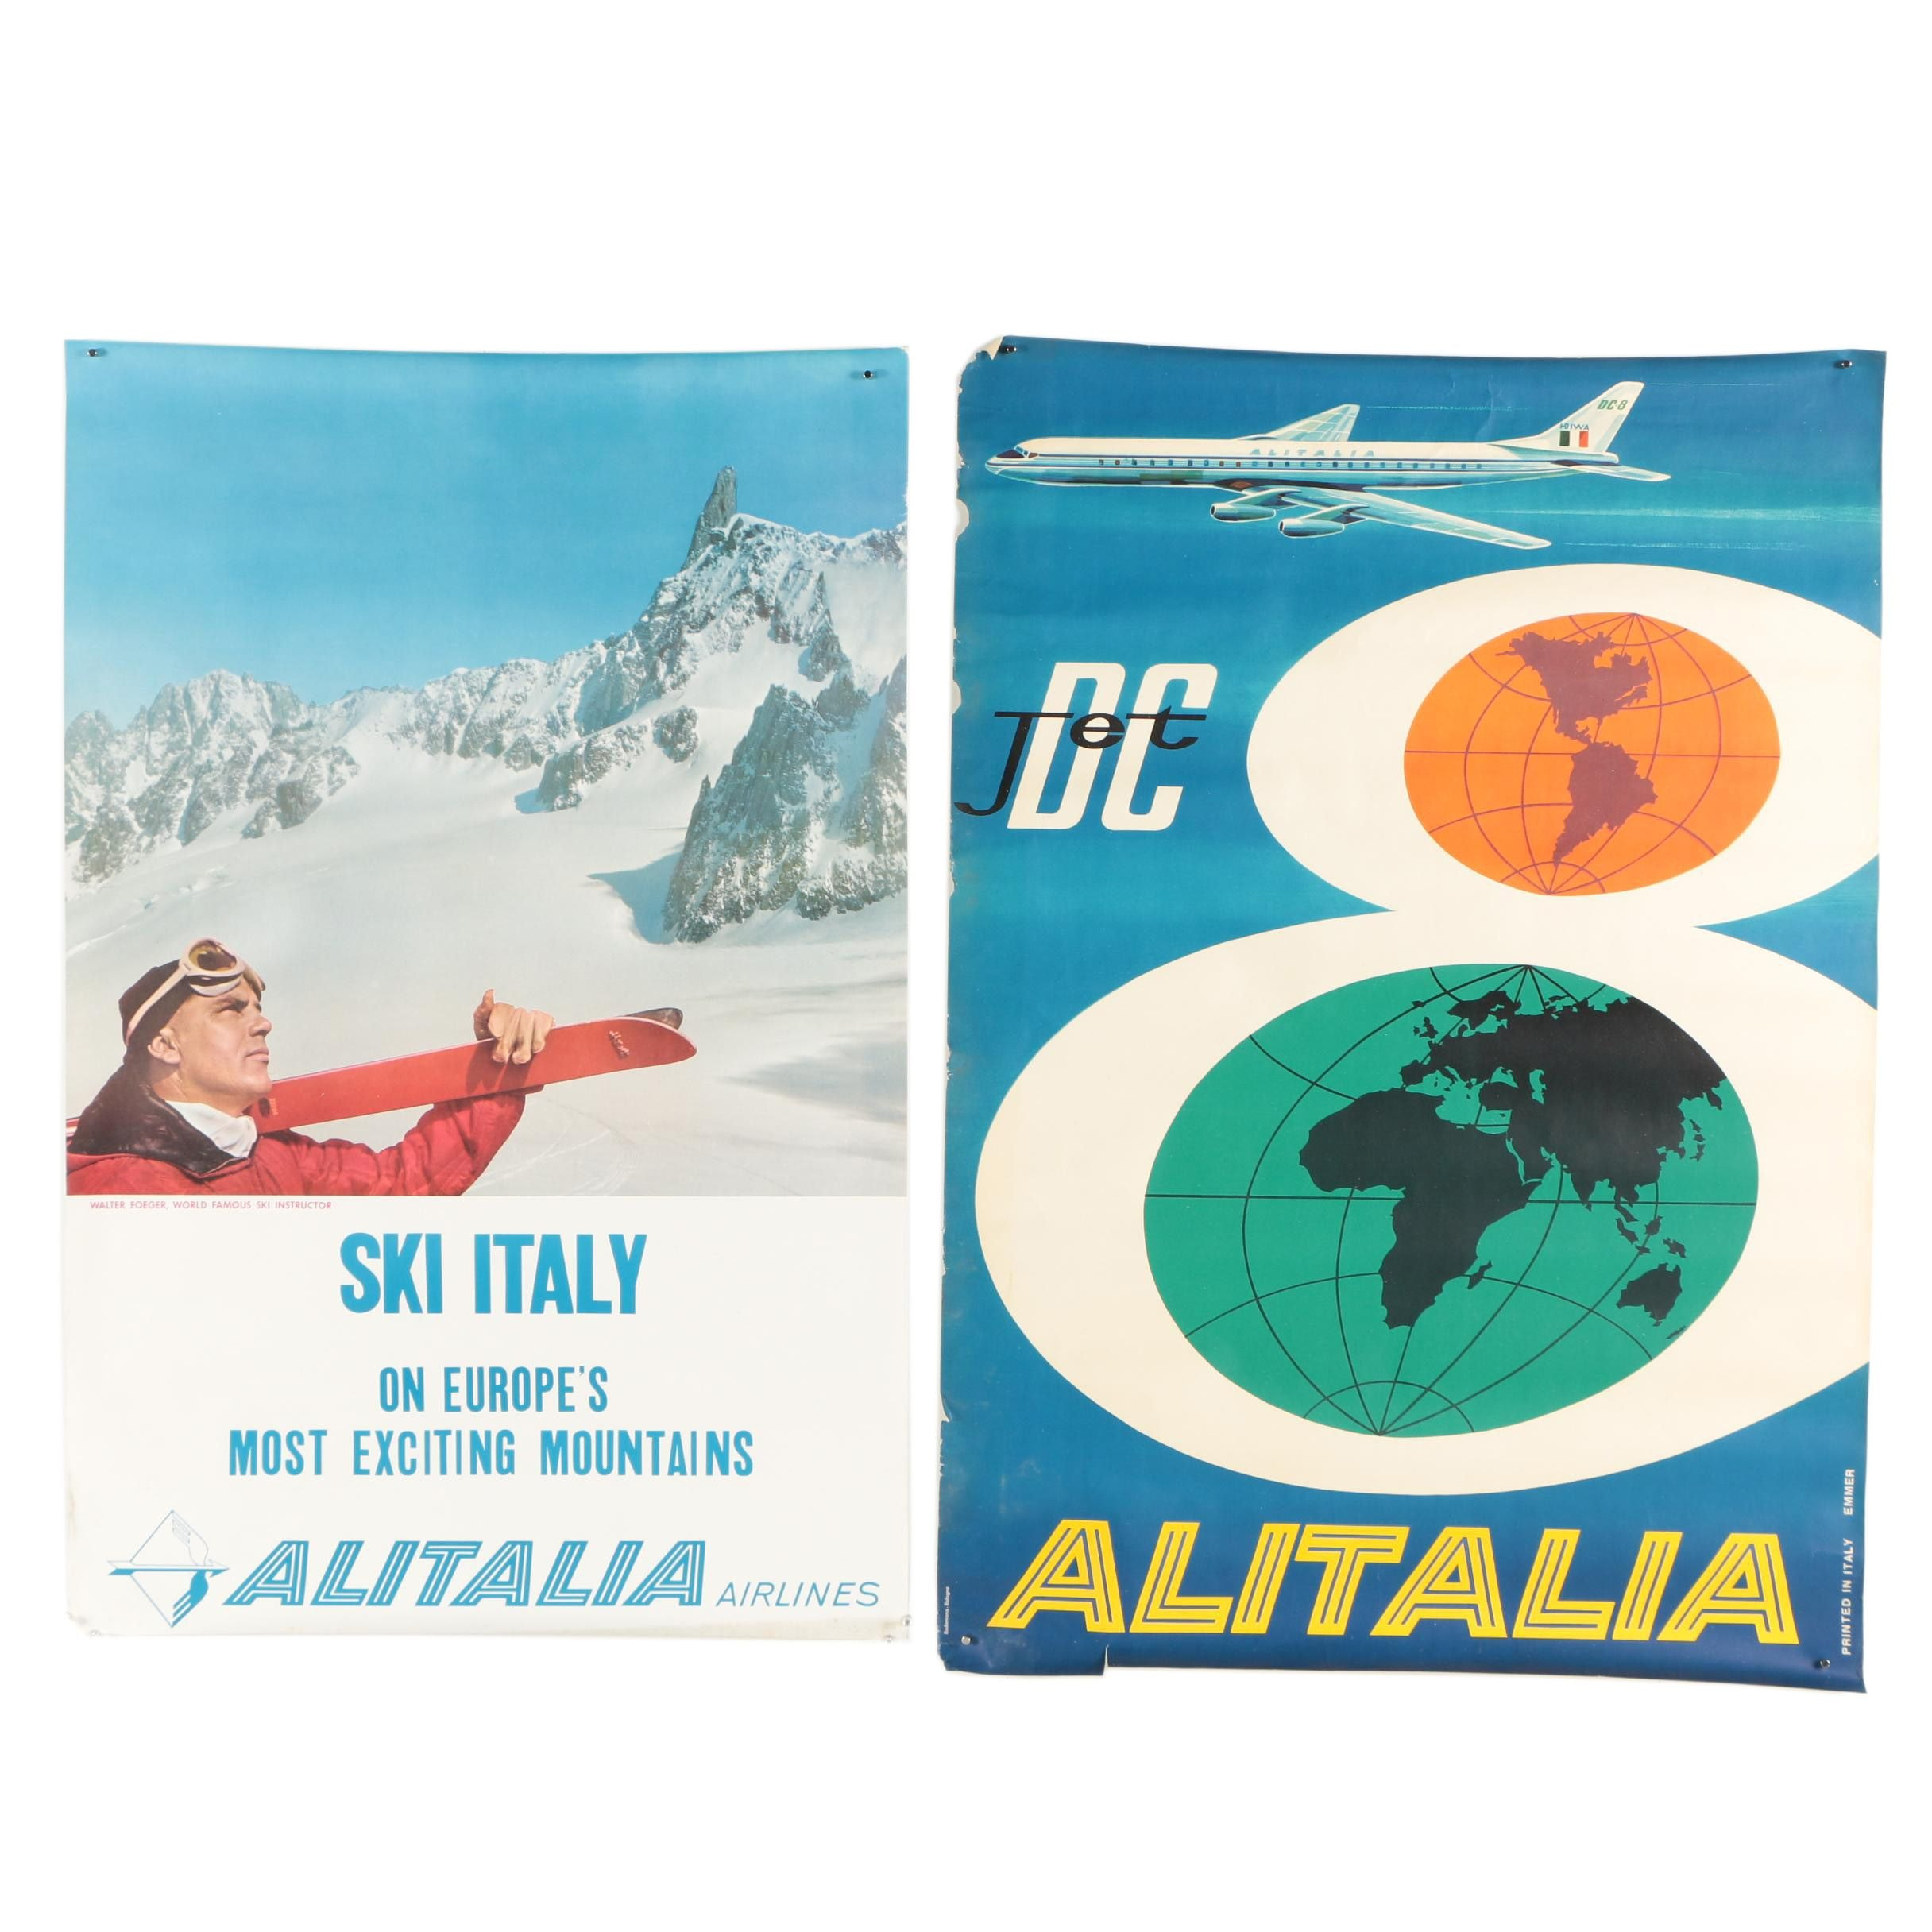 "Vintage Offset Lithograph Airline Travel Posters ""Alitalia Airlines"""